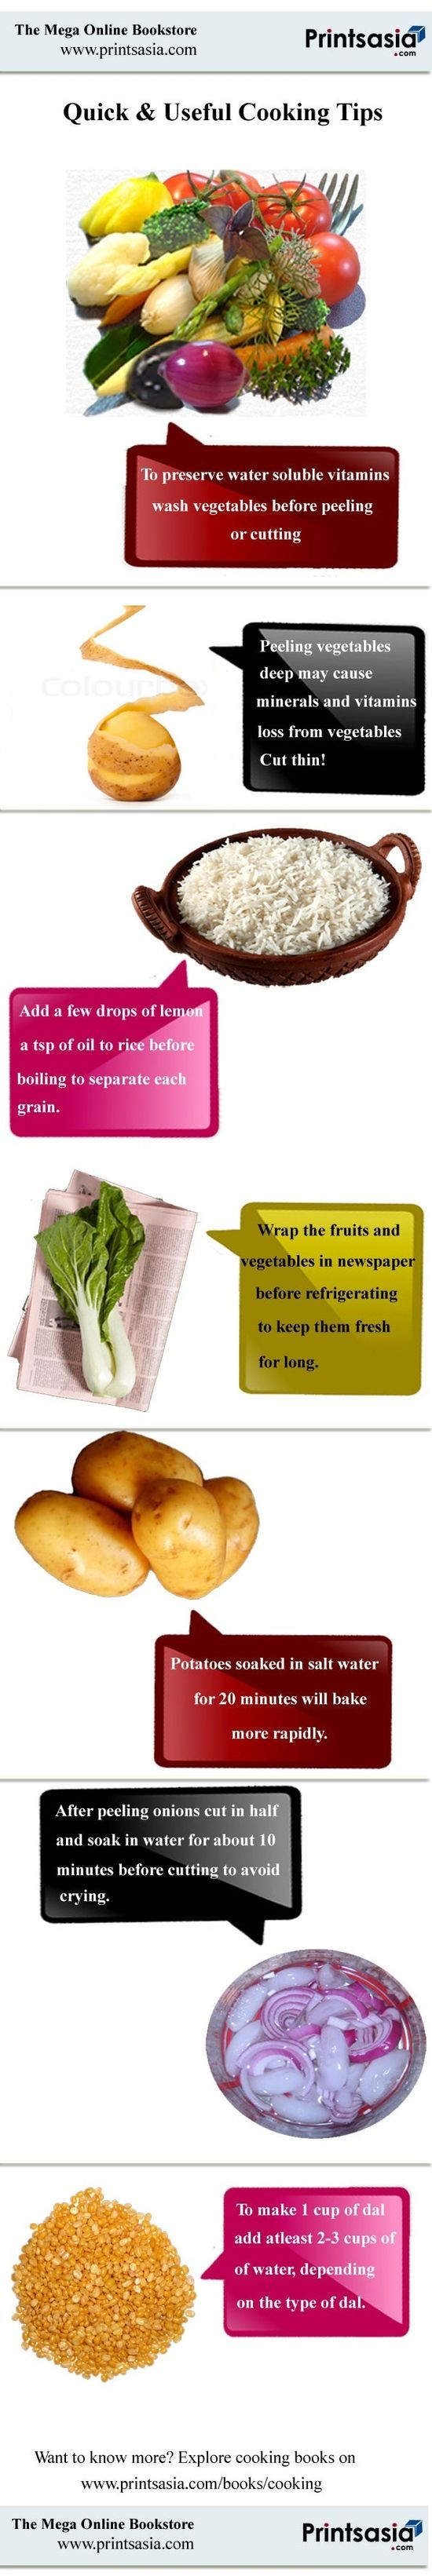 Quick & Useful Cooking Tips